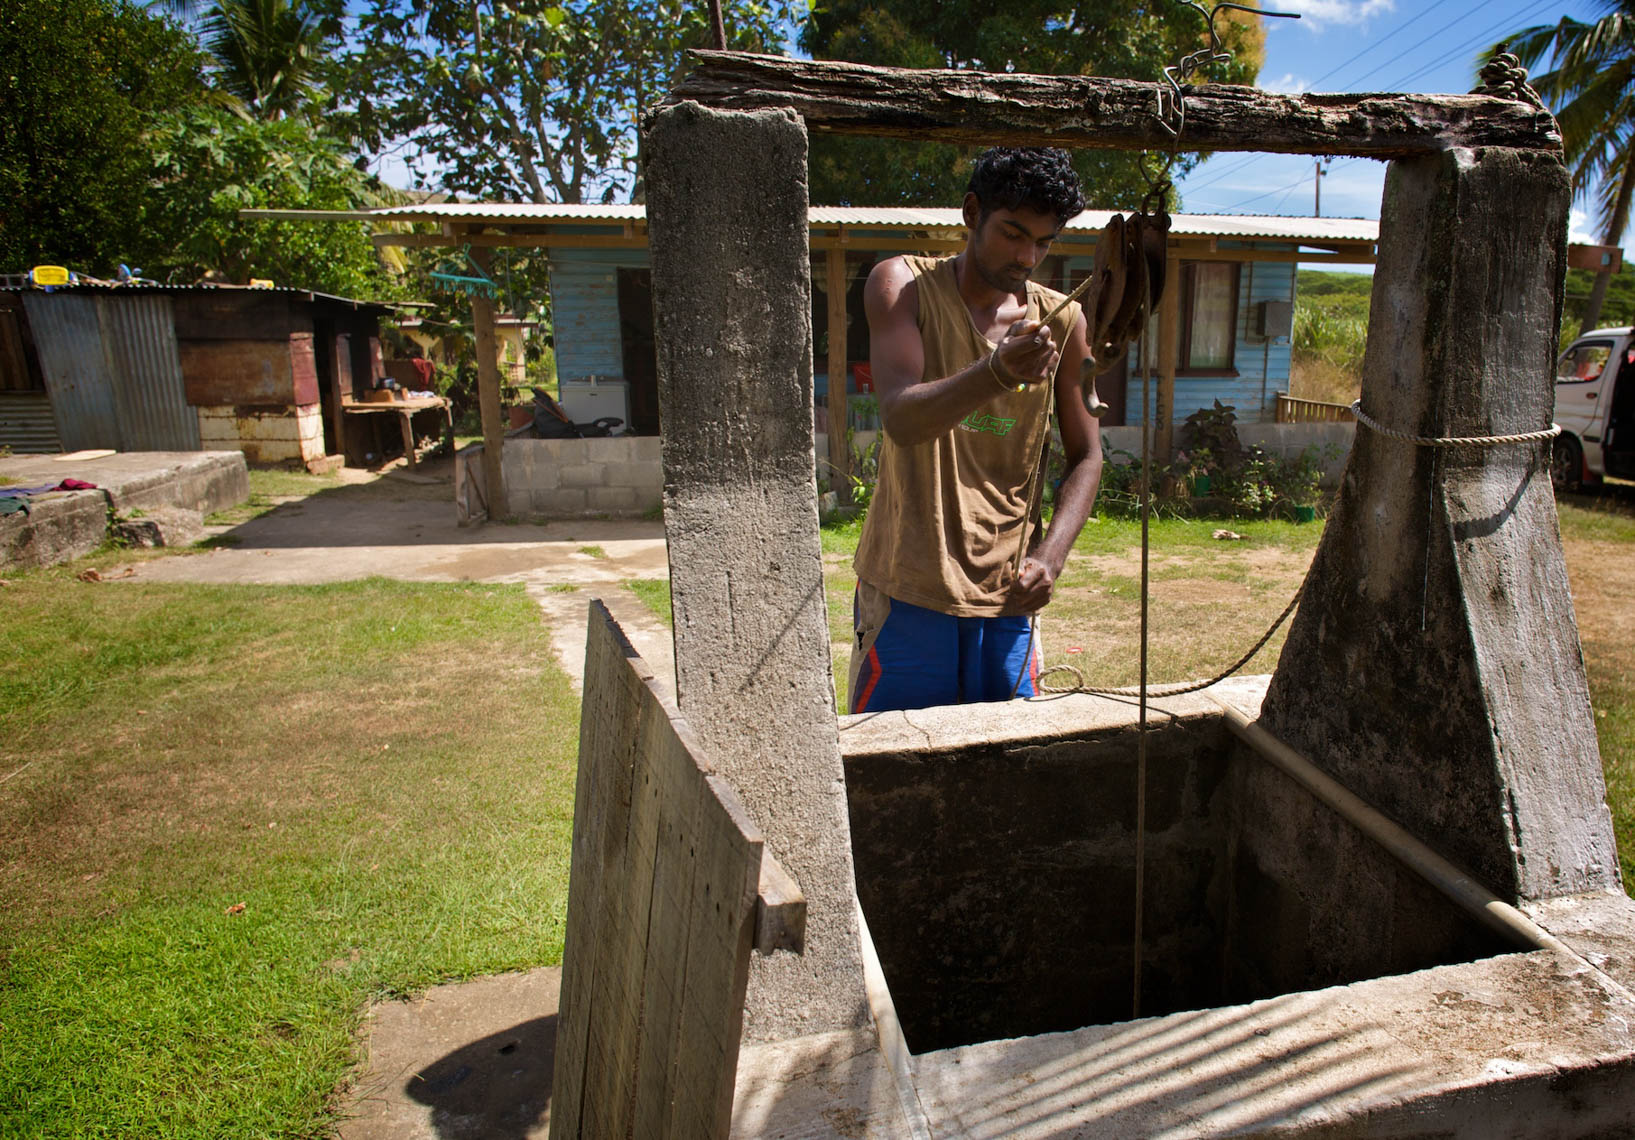 Man Draws Water from Well in Fiji